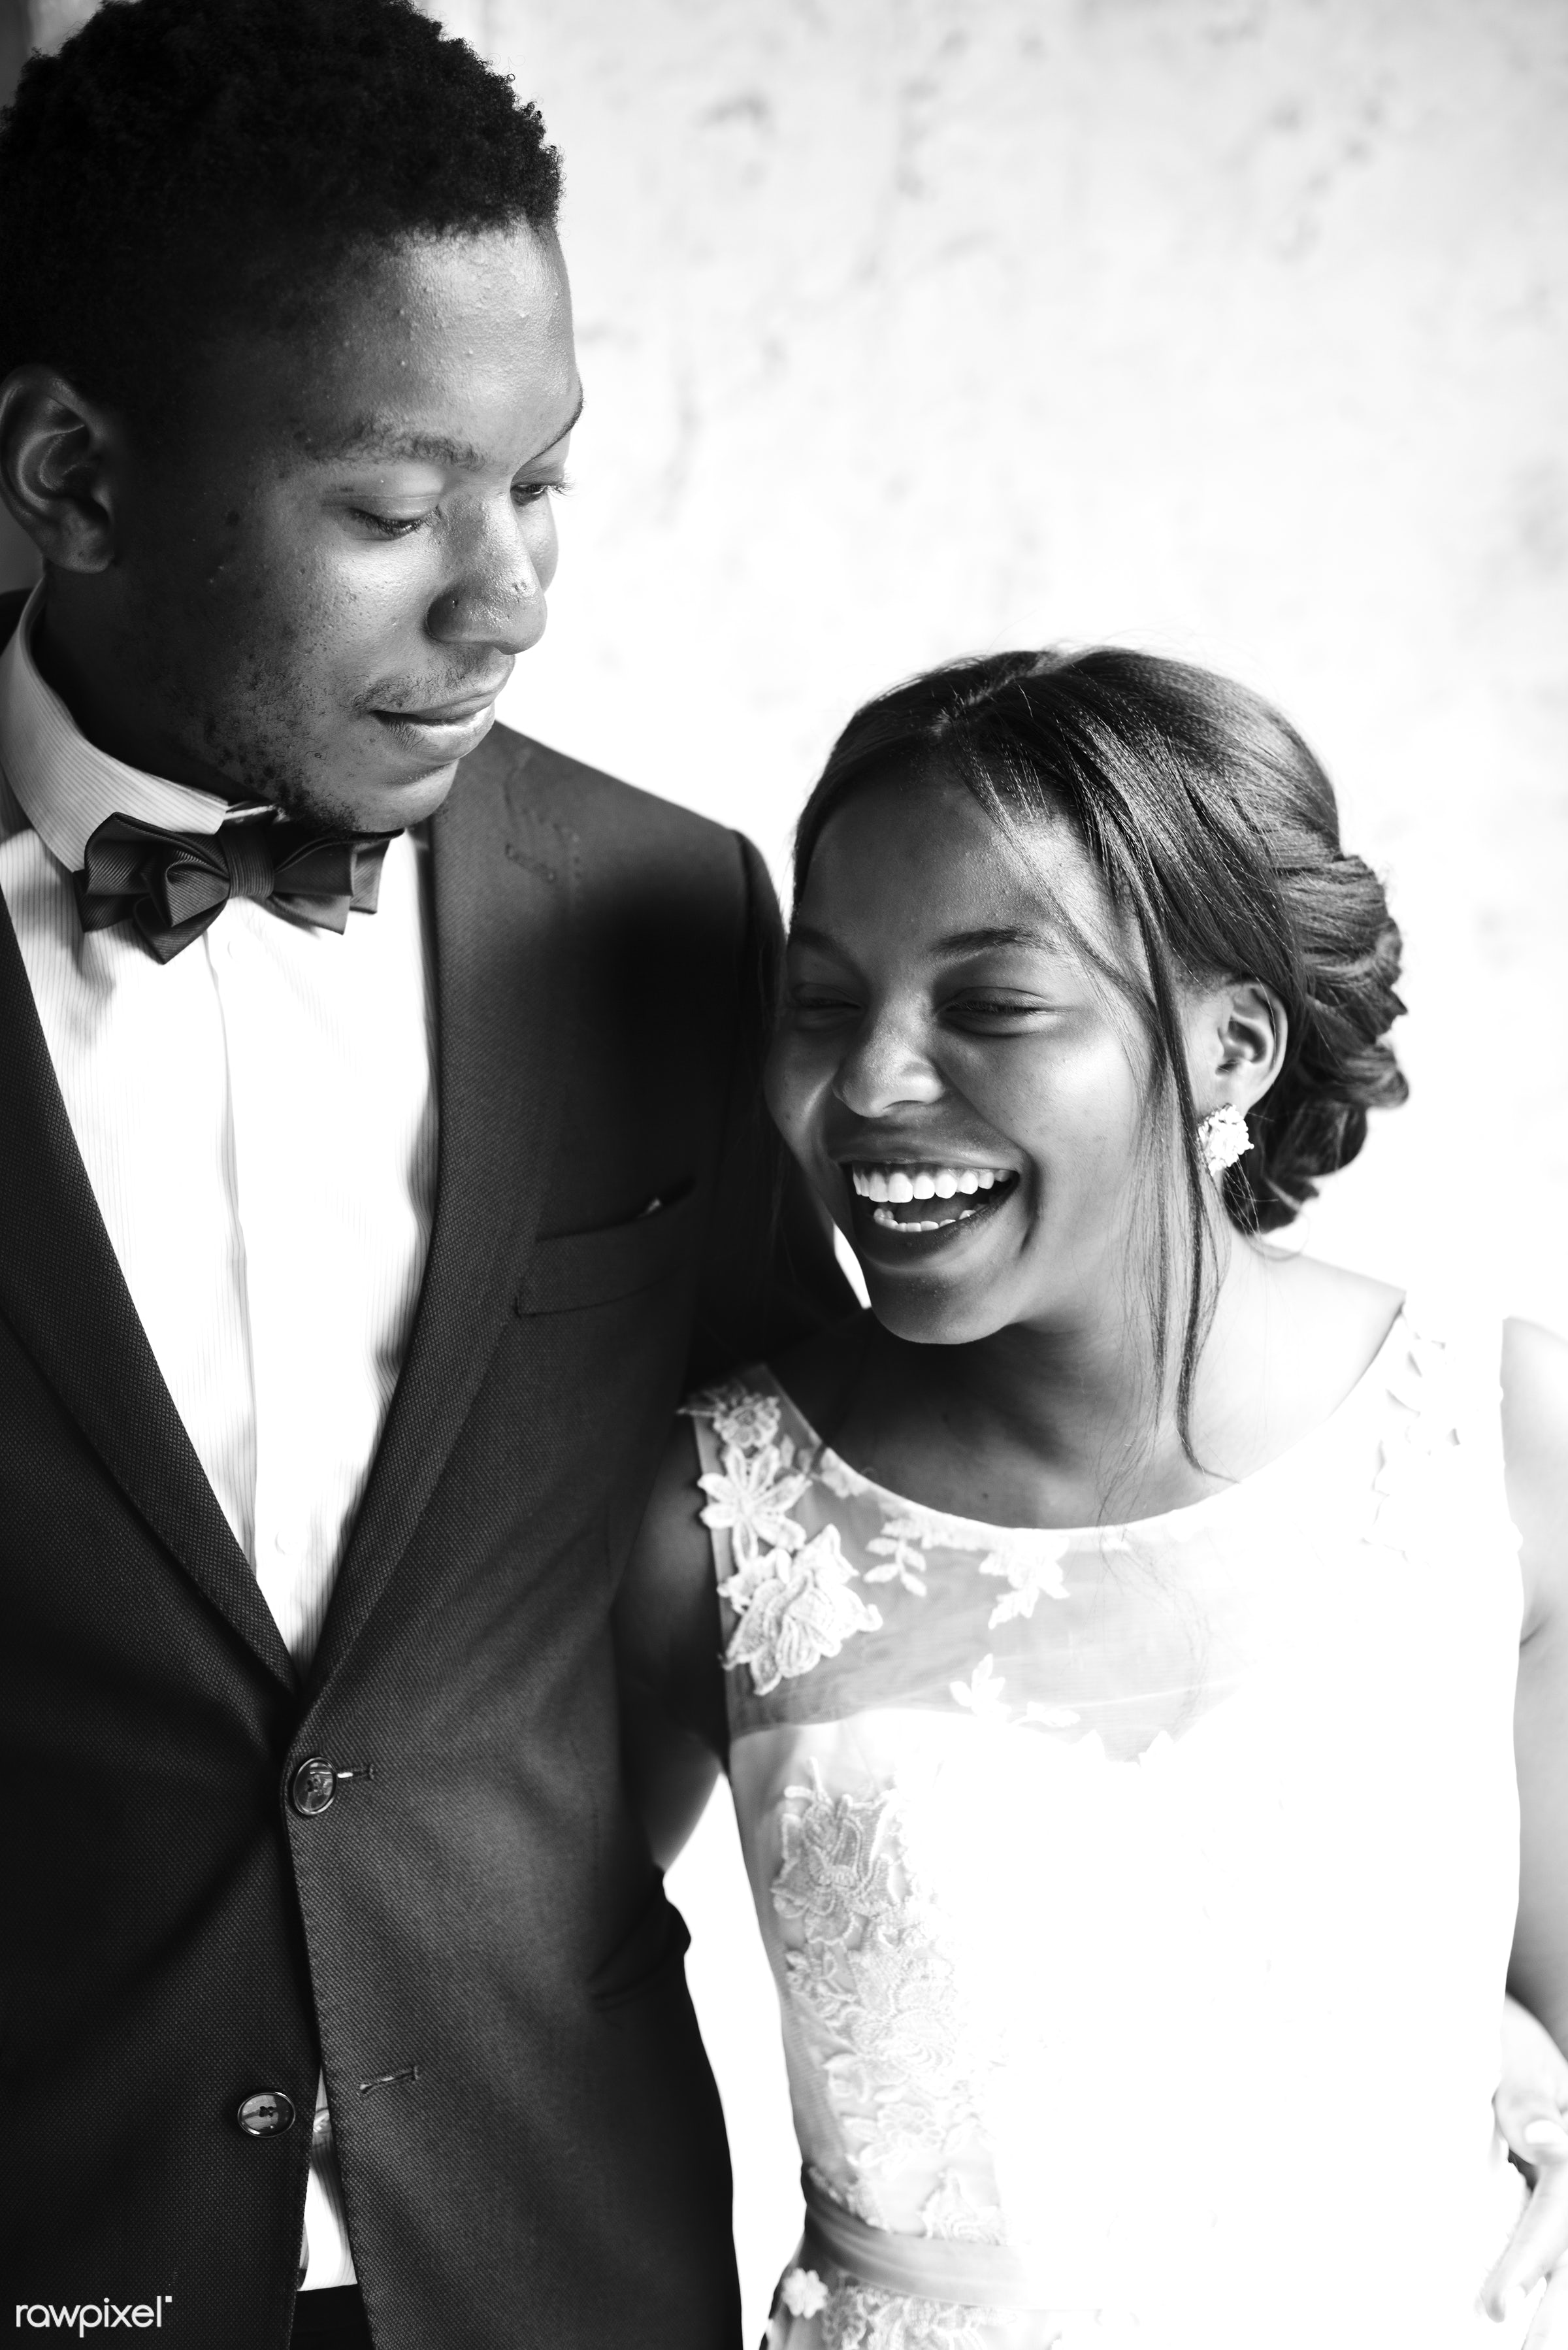 Bride and groom wedding day - bride, candid, celebration, cheerful, couple, enjoying, even, fun, gown, groom, happiness,...